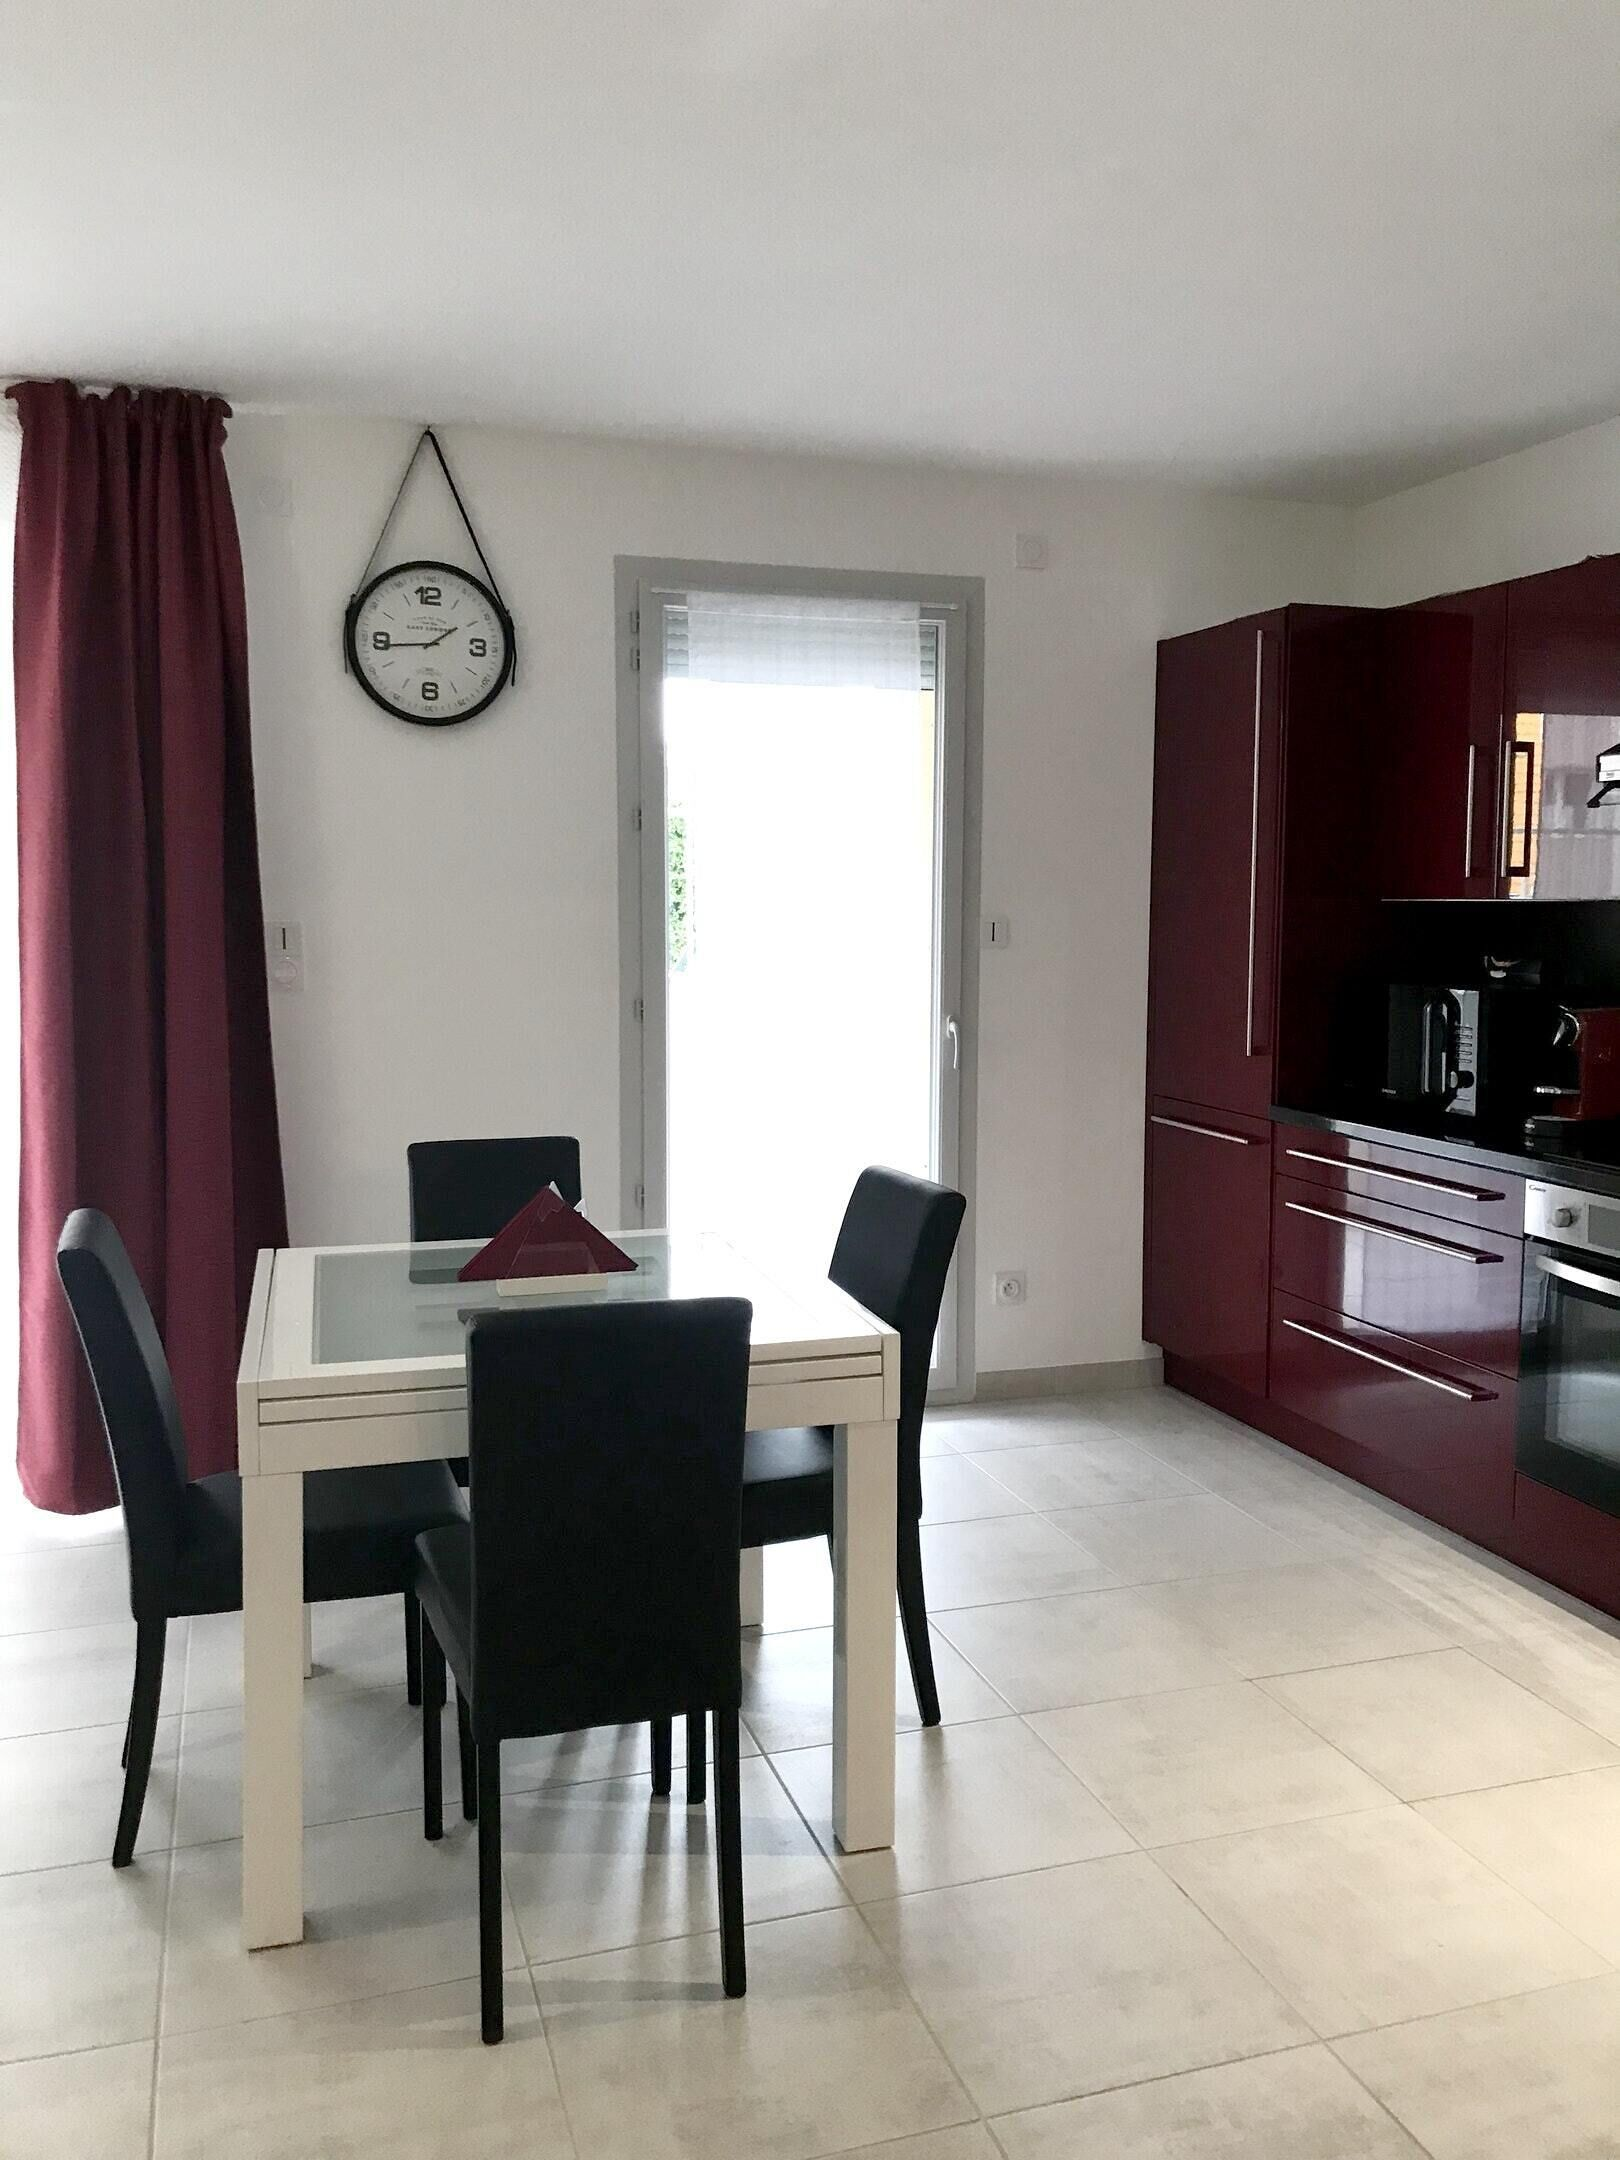 Apartment With 2 Bedrooms In Ferney Voltaire With Wonderful City View Furnished Garden And Wifi Precos Promocoes E Comentarios Expedia Com Br